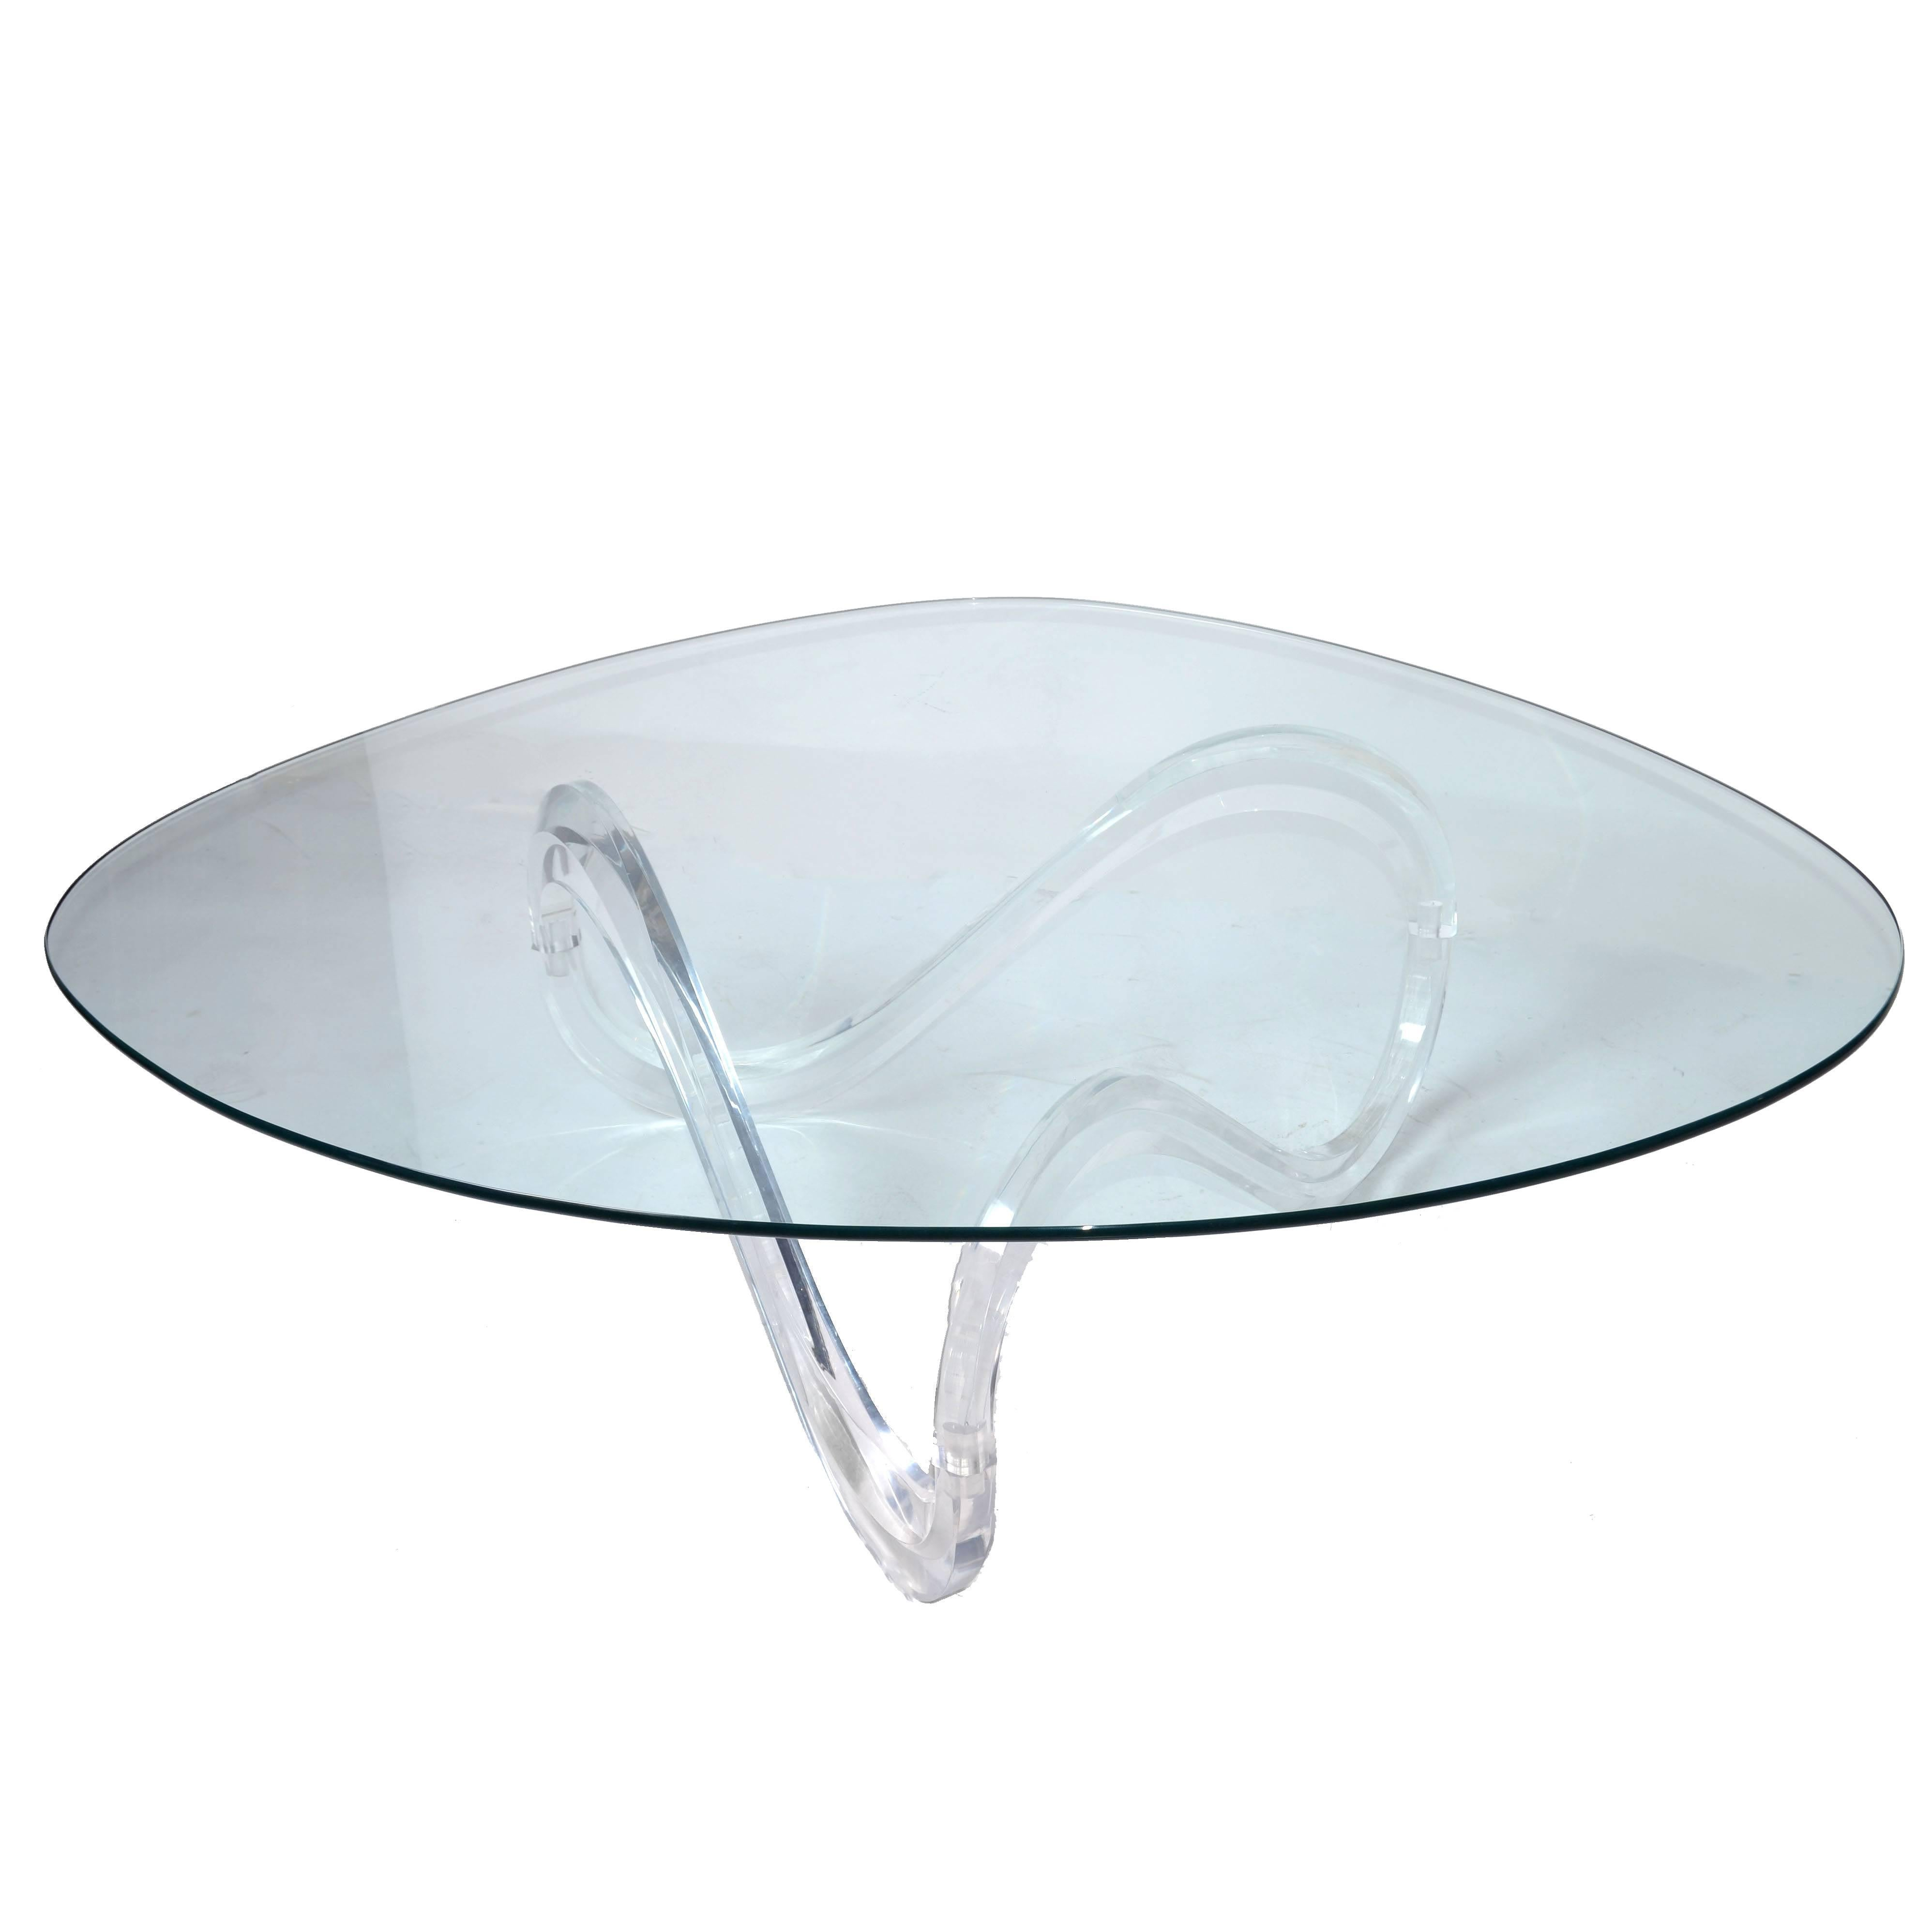 Mid Century Modern Lucite Ribbon Coffee Table In The Manner Charles